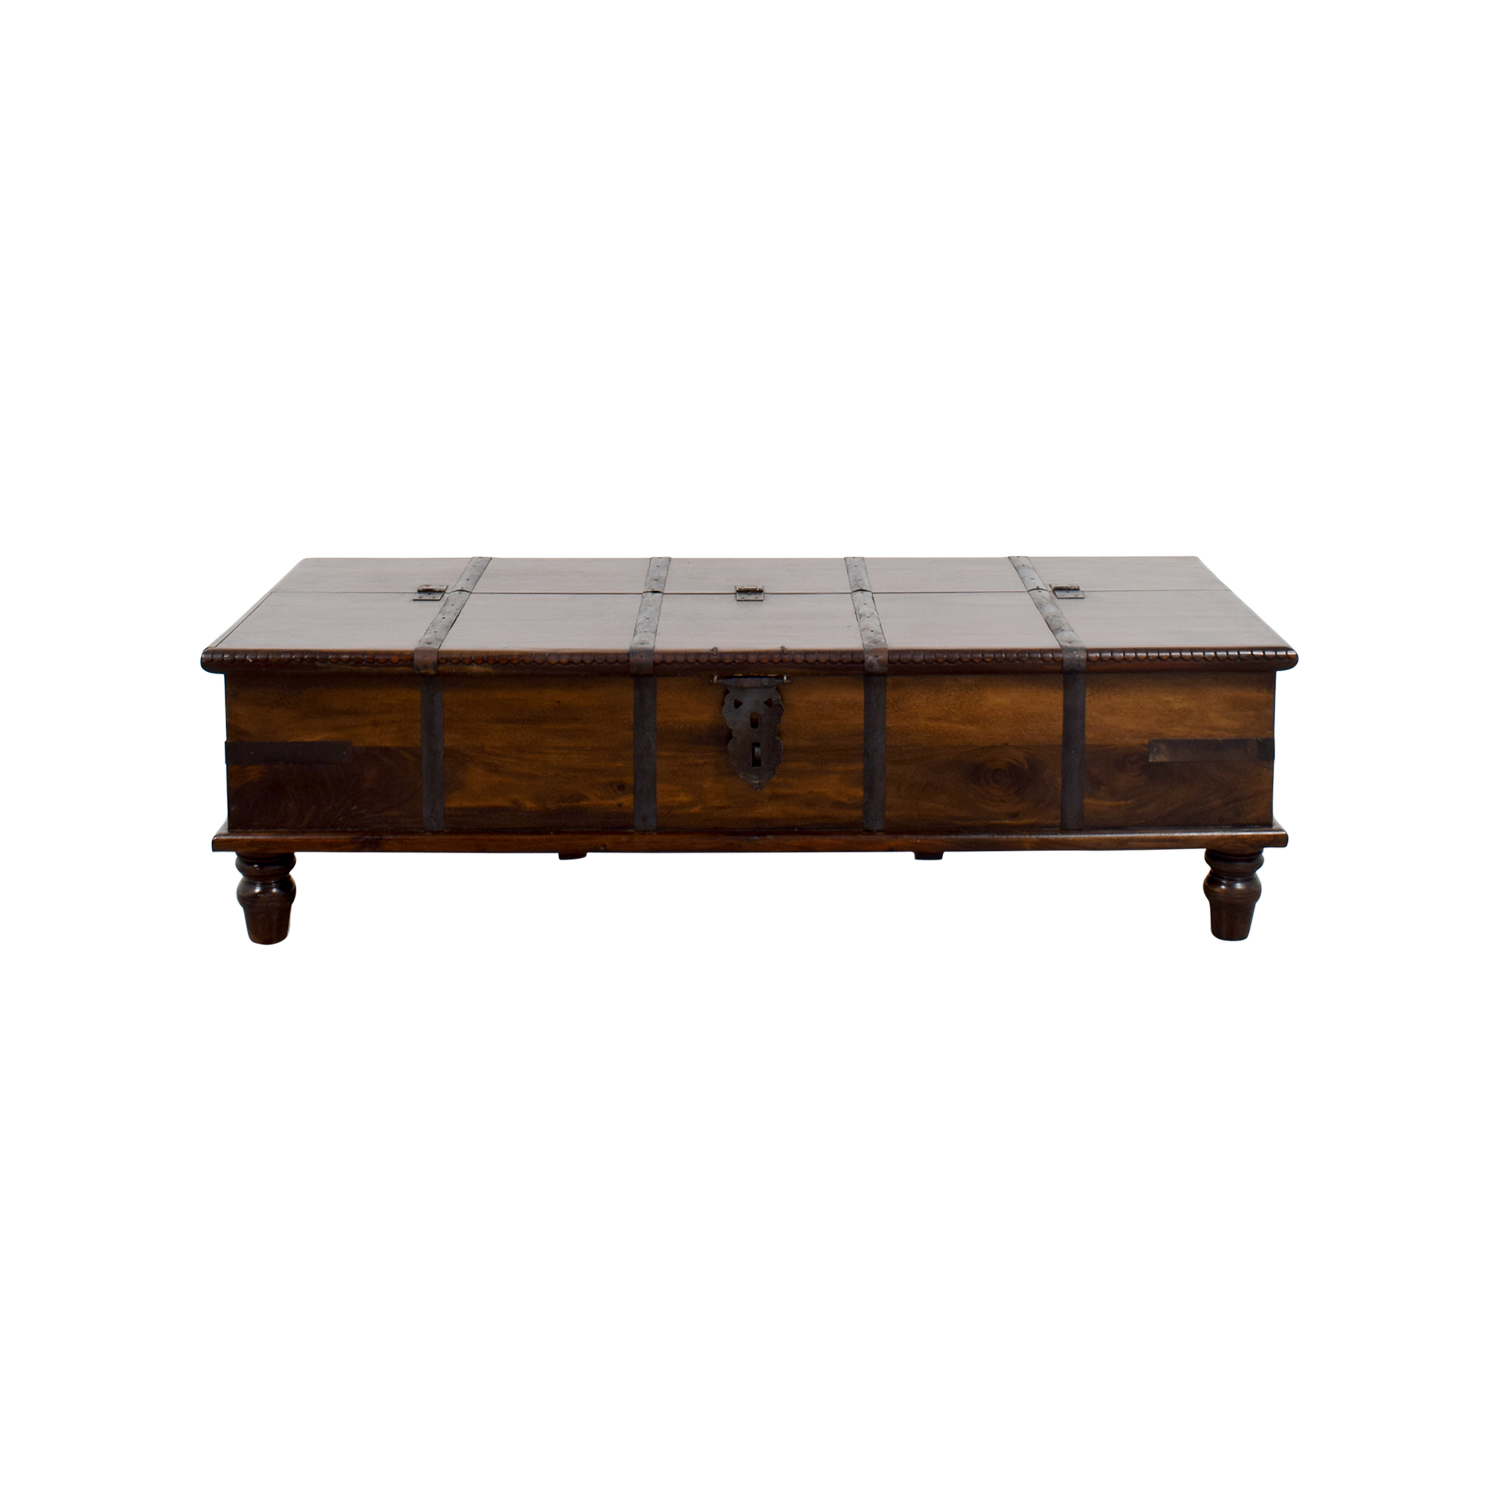 off gallerie moroccan coffee table tables accent for tray target threshold floor lamp nautical shades ikea kitchen and chairs tablecloth kirklands bar stools metal living room